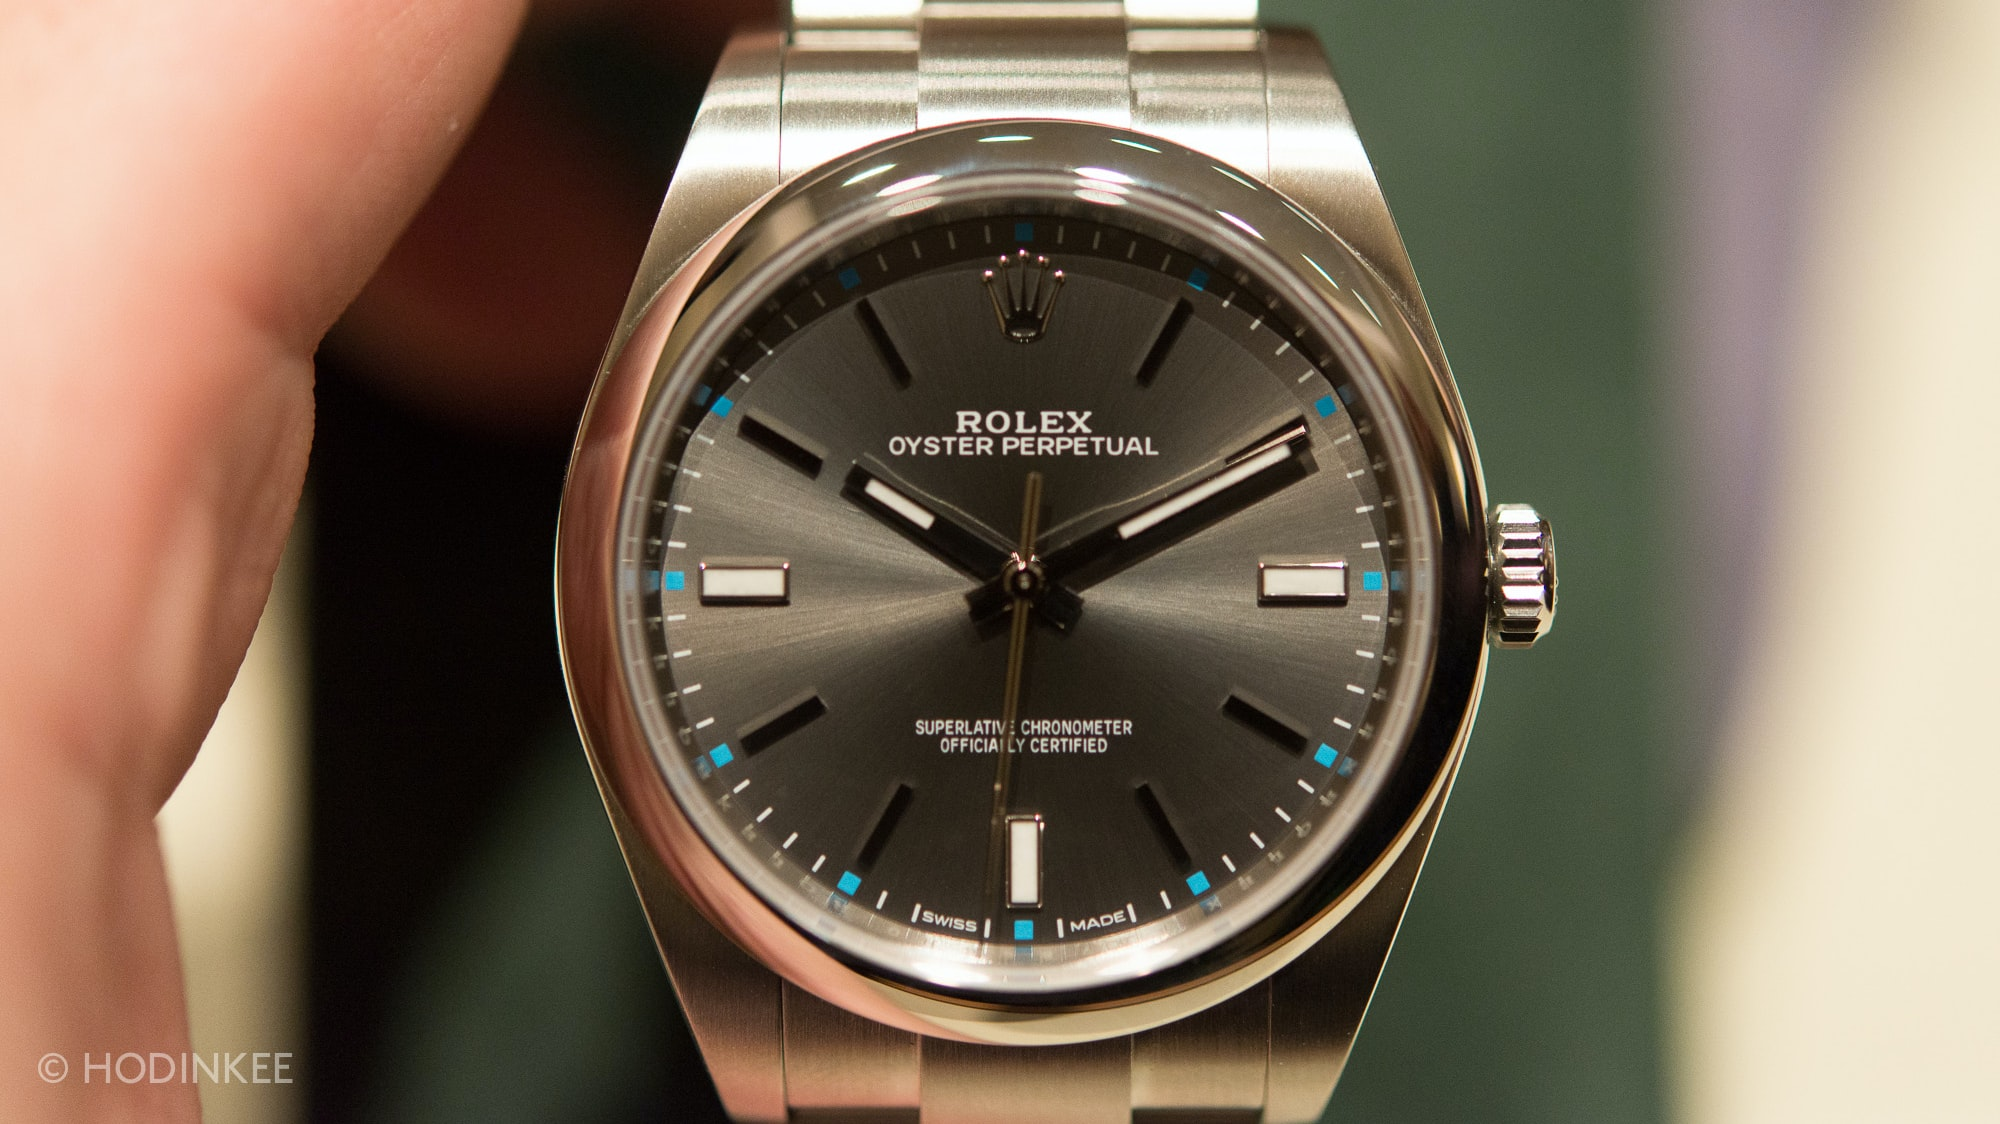 Hands-On: With The New 39 MM Rolex Oyster Perpetual